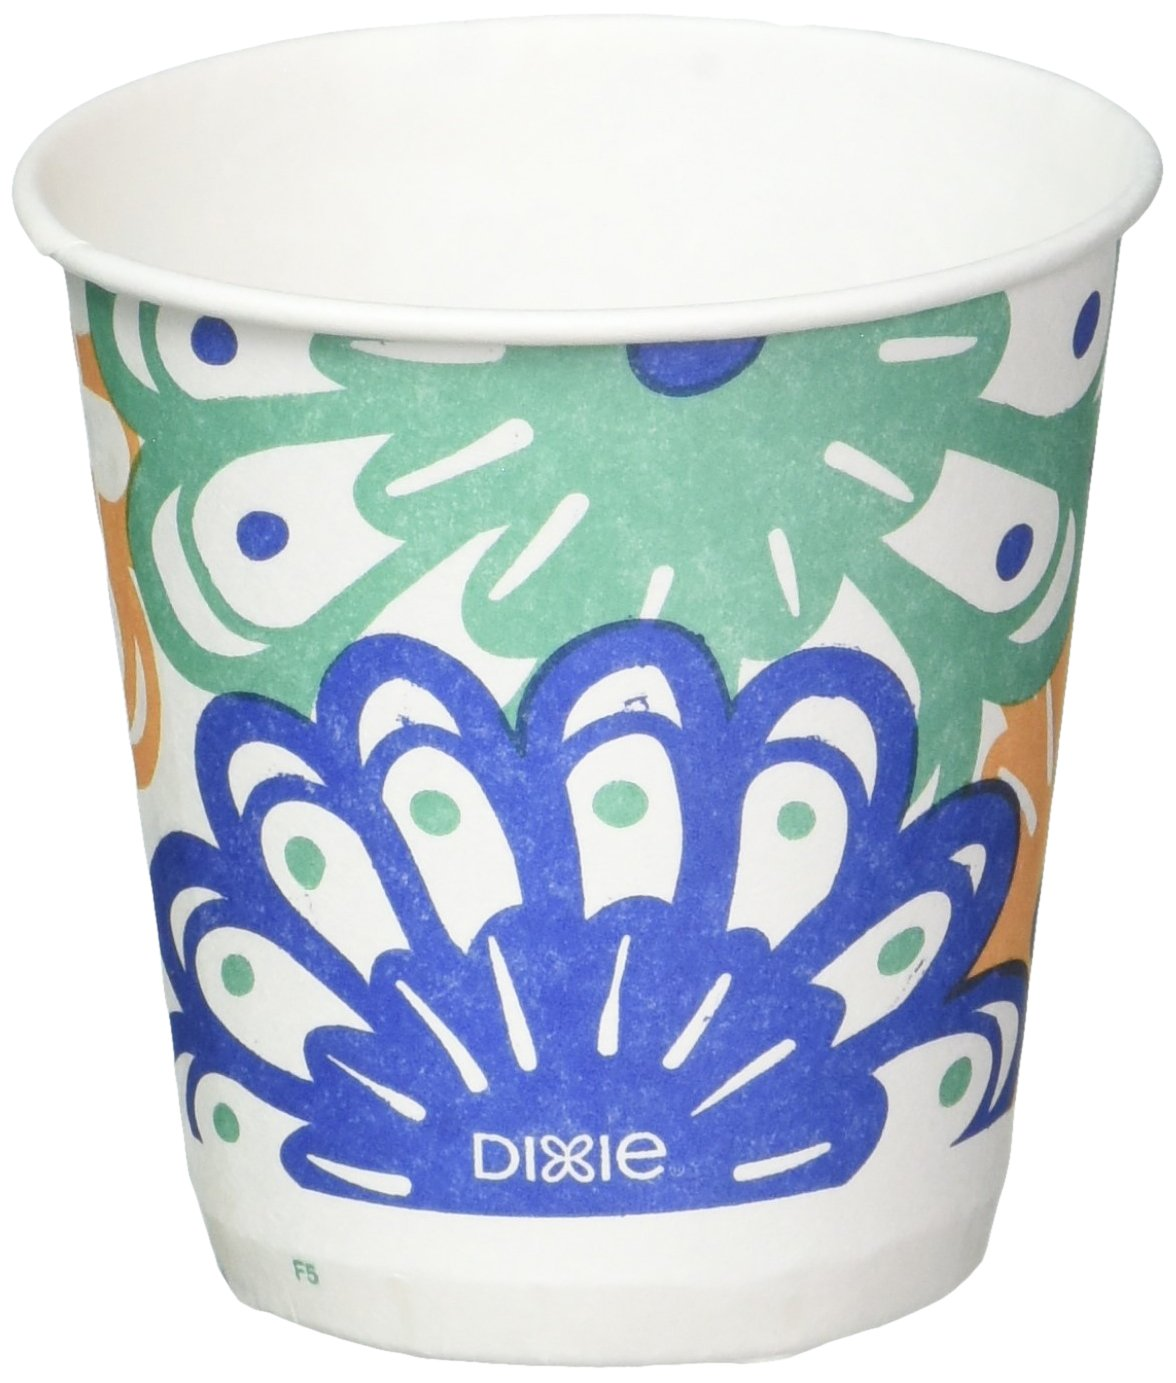 Dixie Disposable Bathroom Cups, Coordinating Design 3 oz. - 1200 Cups